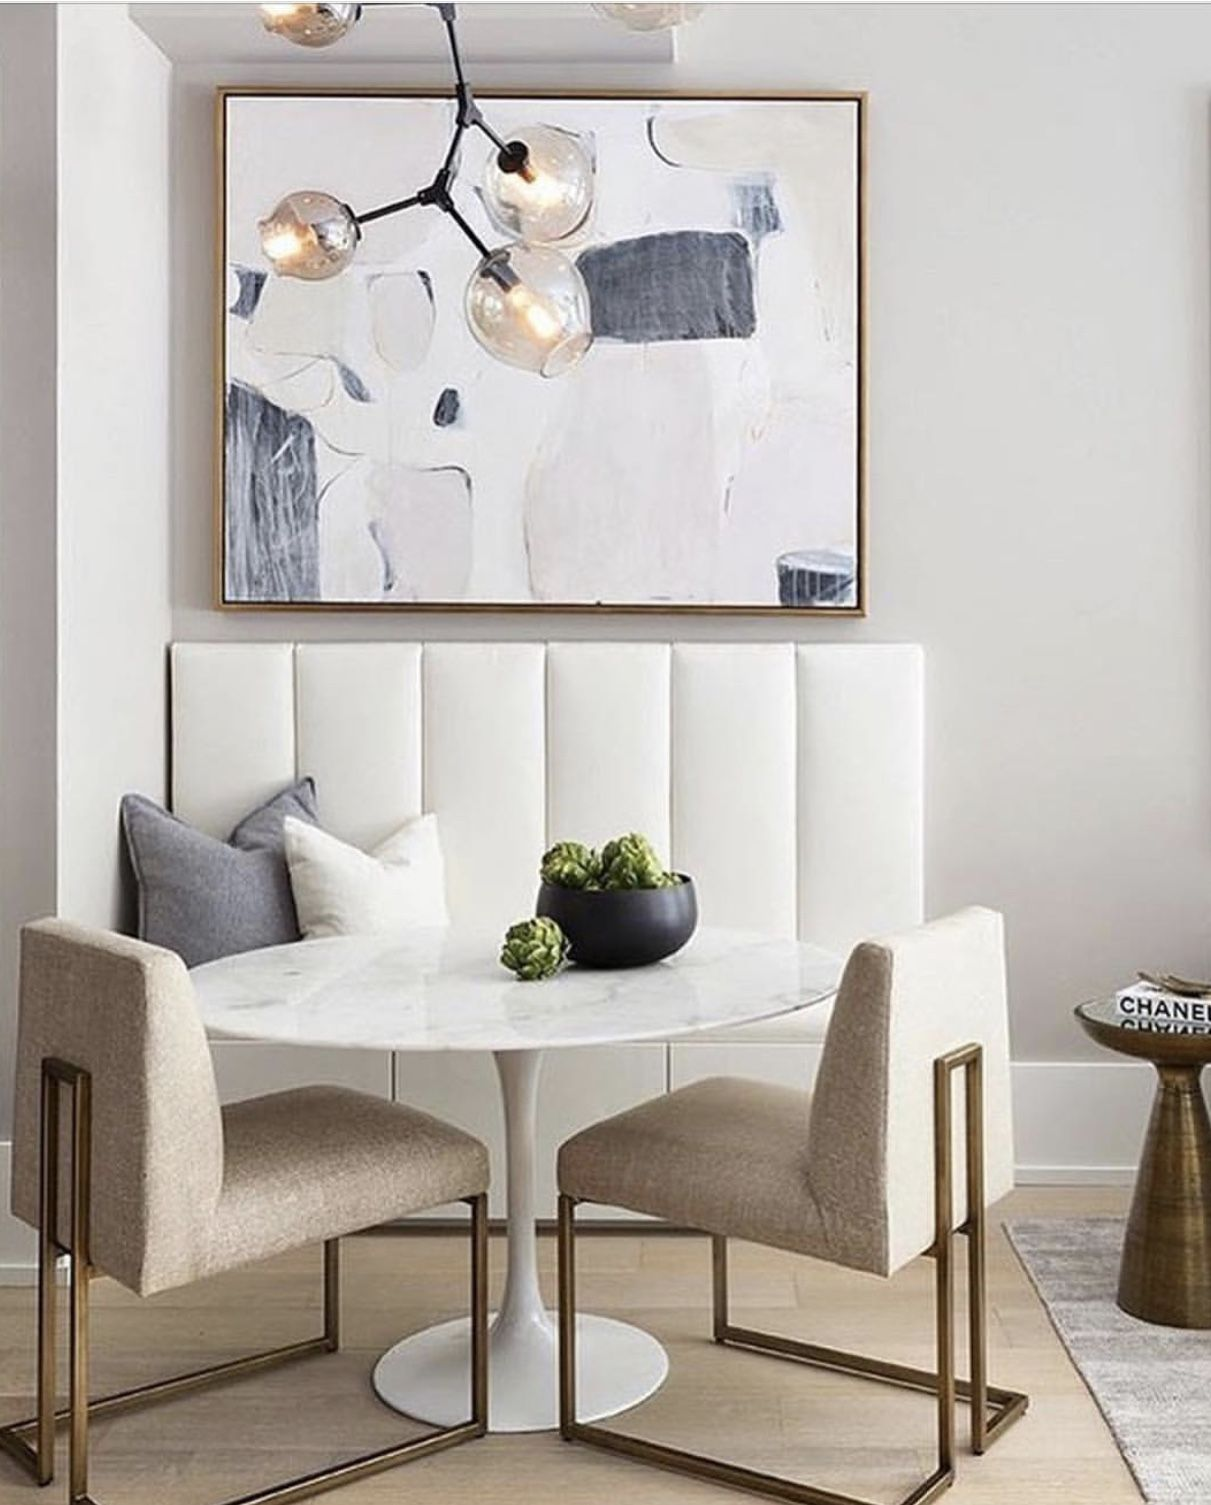 Pin By Miriam Gonzalez On Hk House Dining Room Small Dining